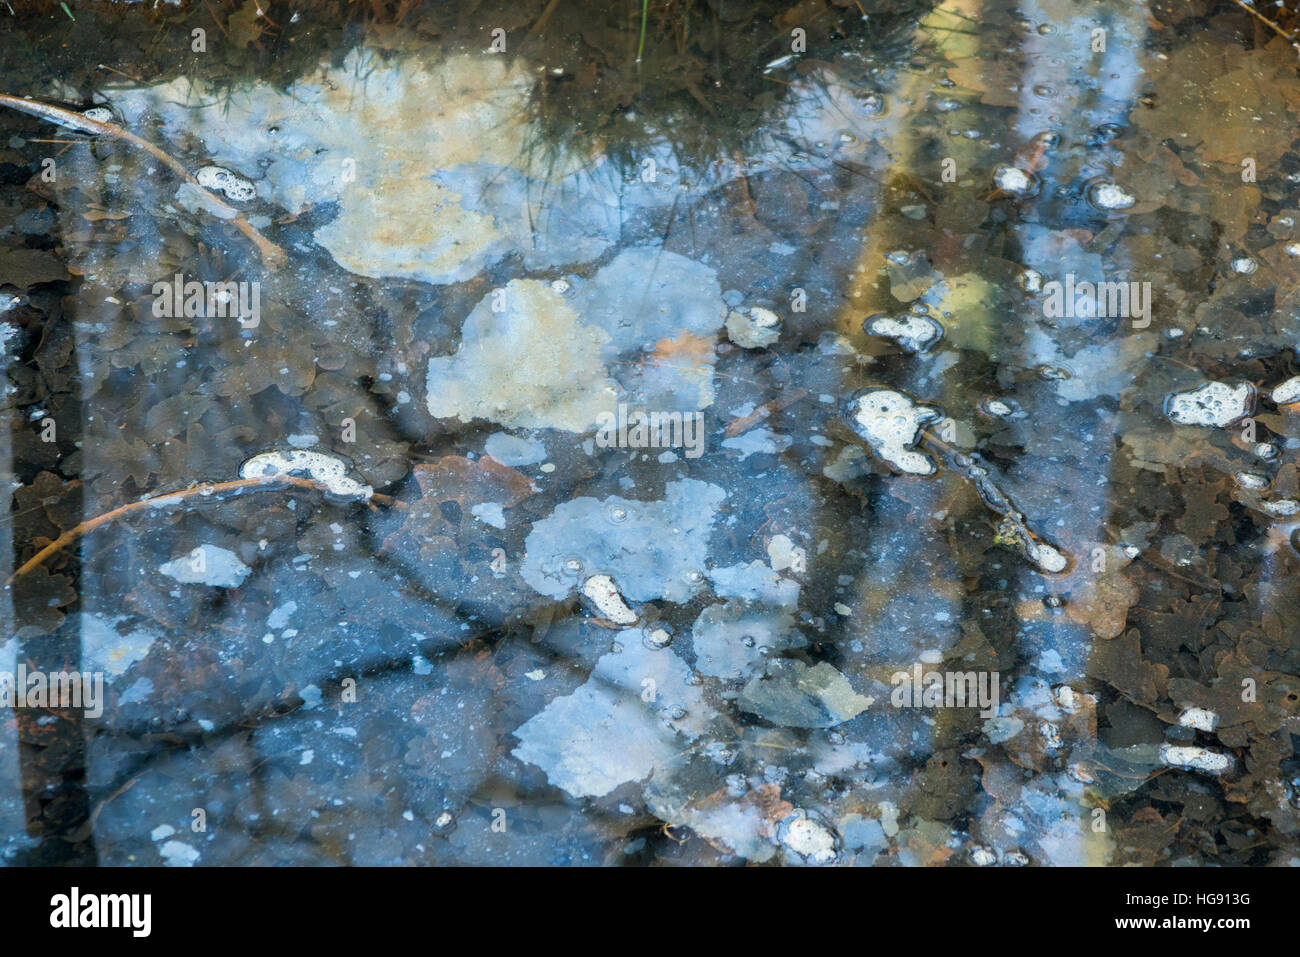 Water pool / pond / slow flowing stream polluted with surface / floating oil or grease. Oxshott Common, near Esher, - Stock Image